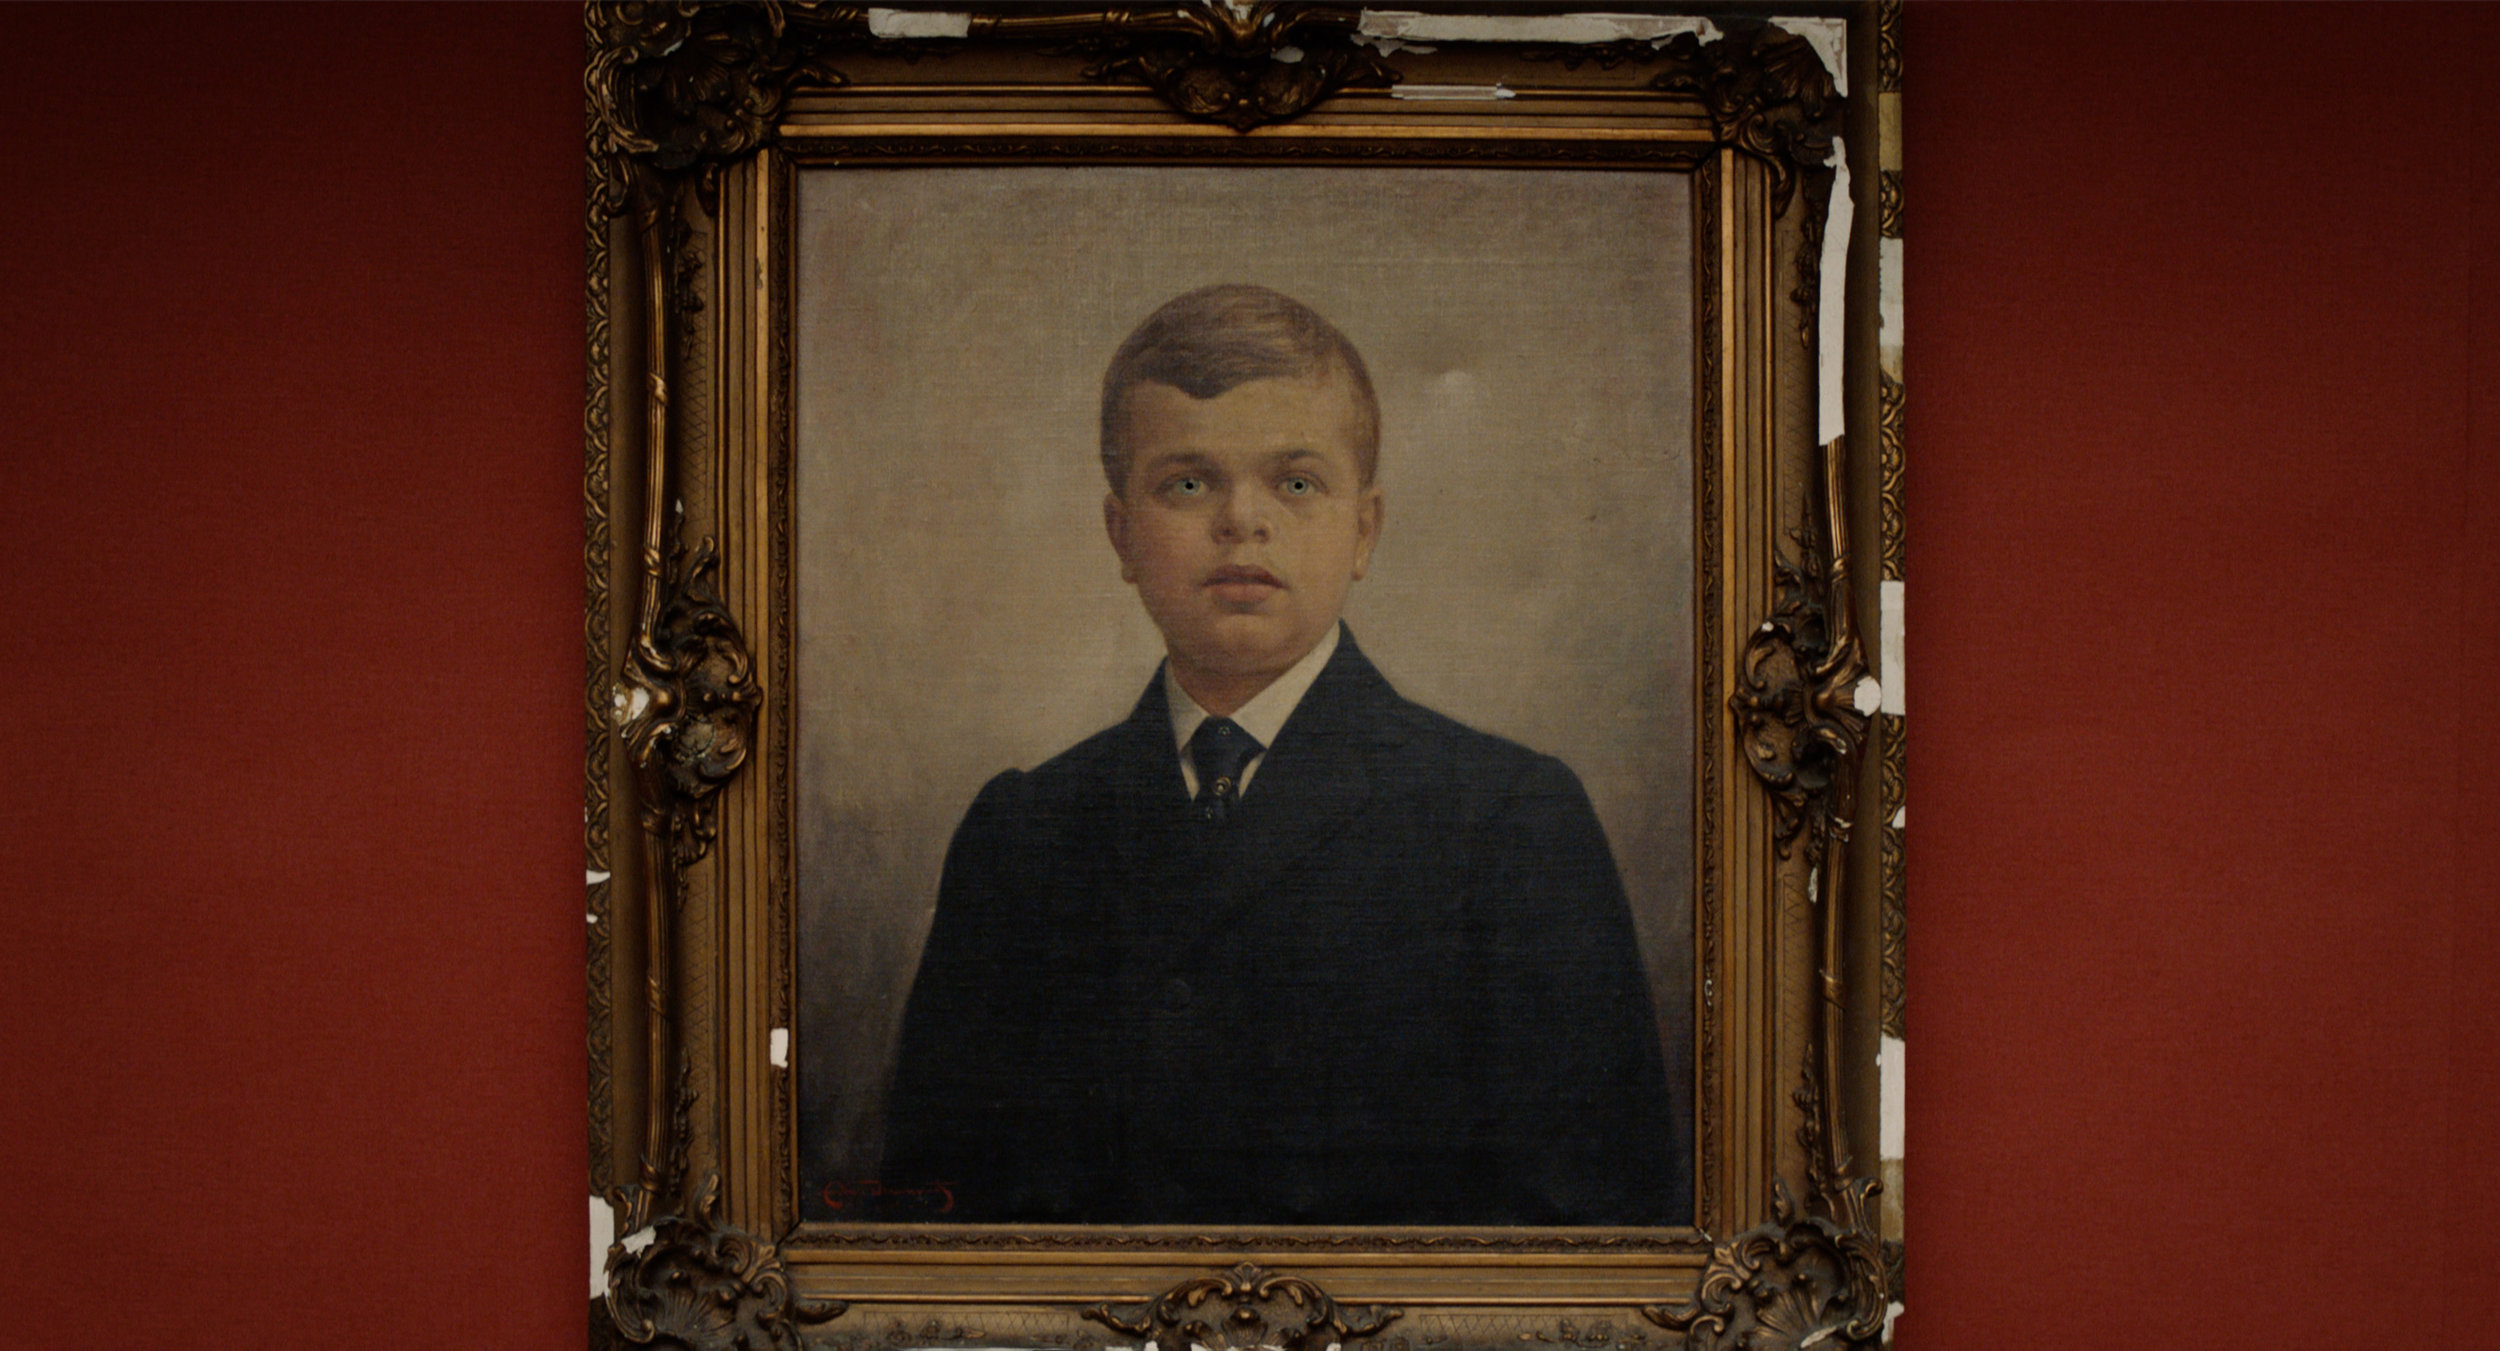 A painted portrait of a young looking man in an intricate frame on a wall of a gallery. He wears a black tuxedo and tie.